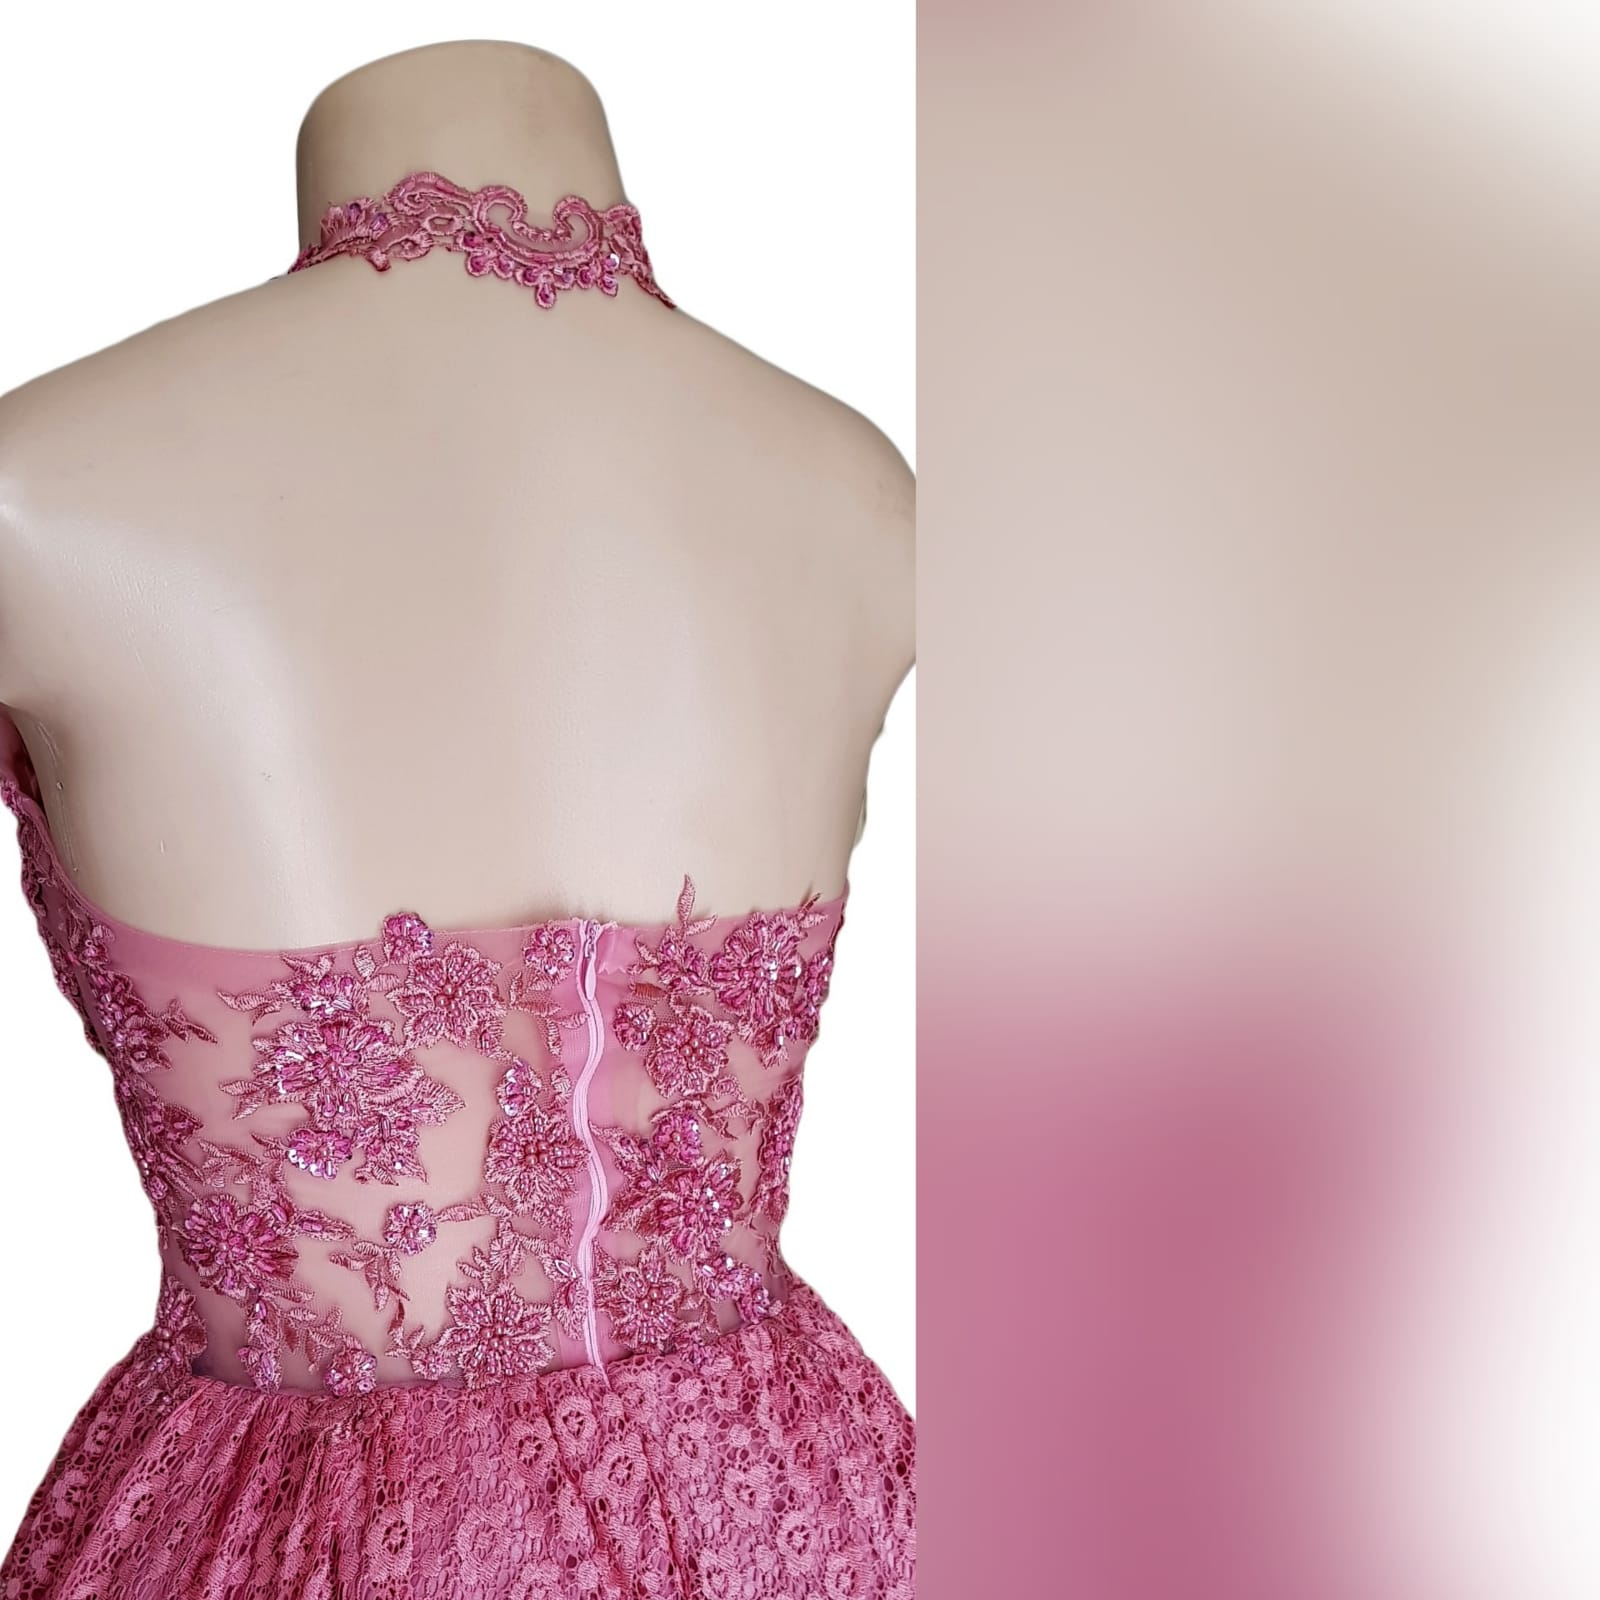 High low dusty pink prom dress 2 high low dusty pink prom dress with an illusion bodice detailed with beaded lace. Bottom fully laced.